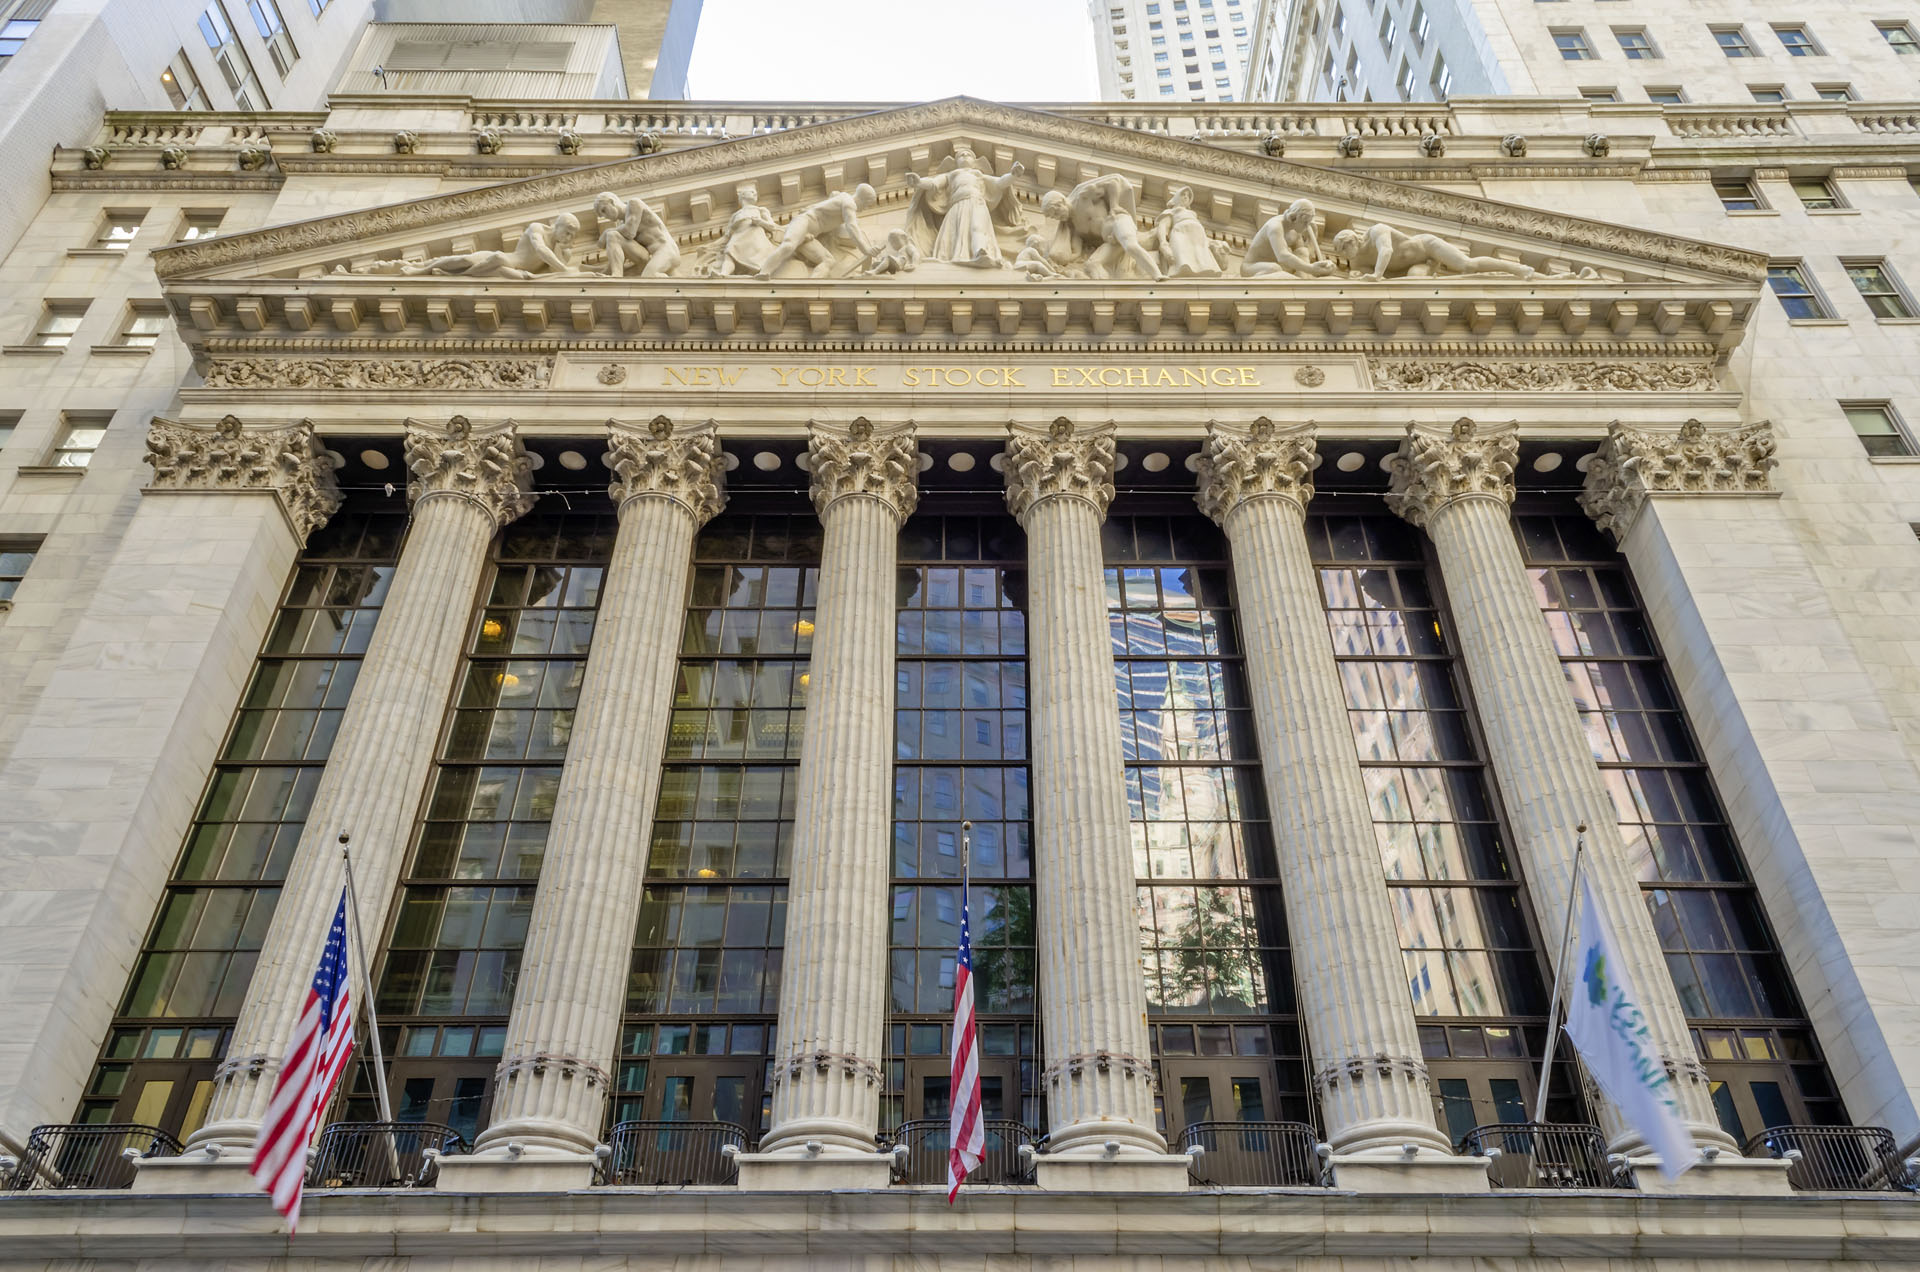 New York Stock Exchange, Wall Street, New York City, USA